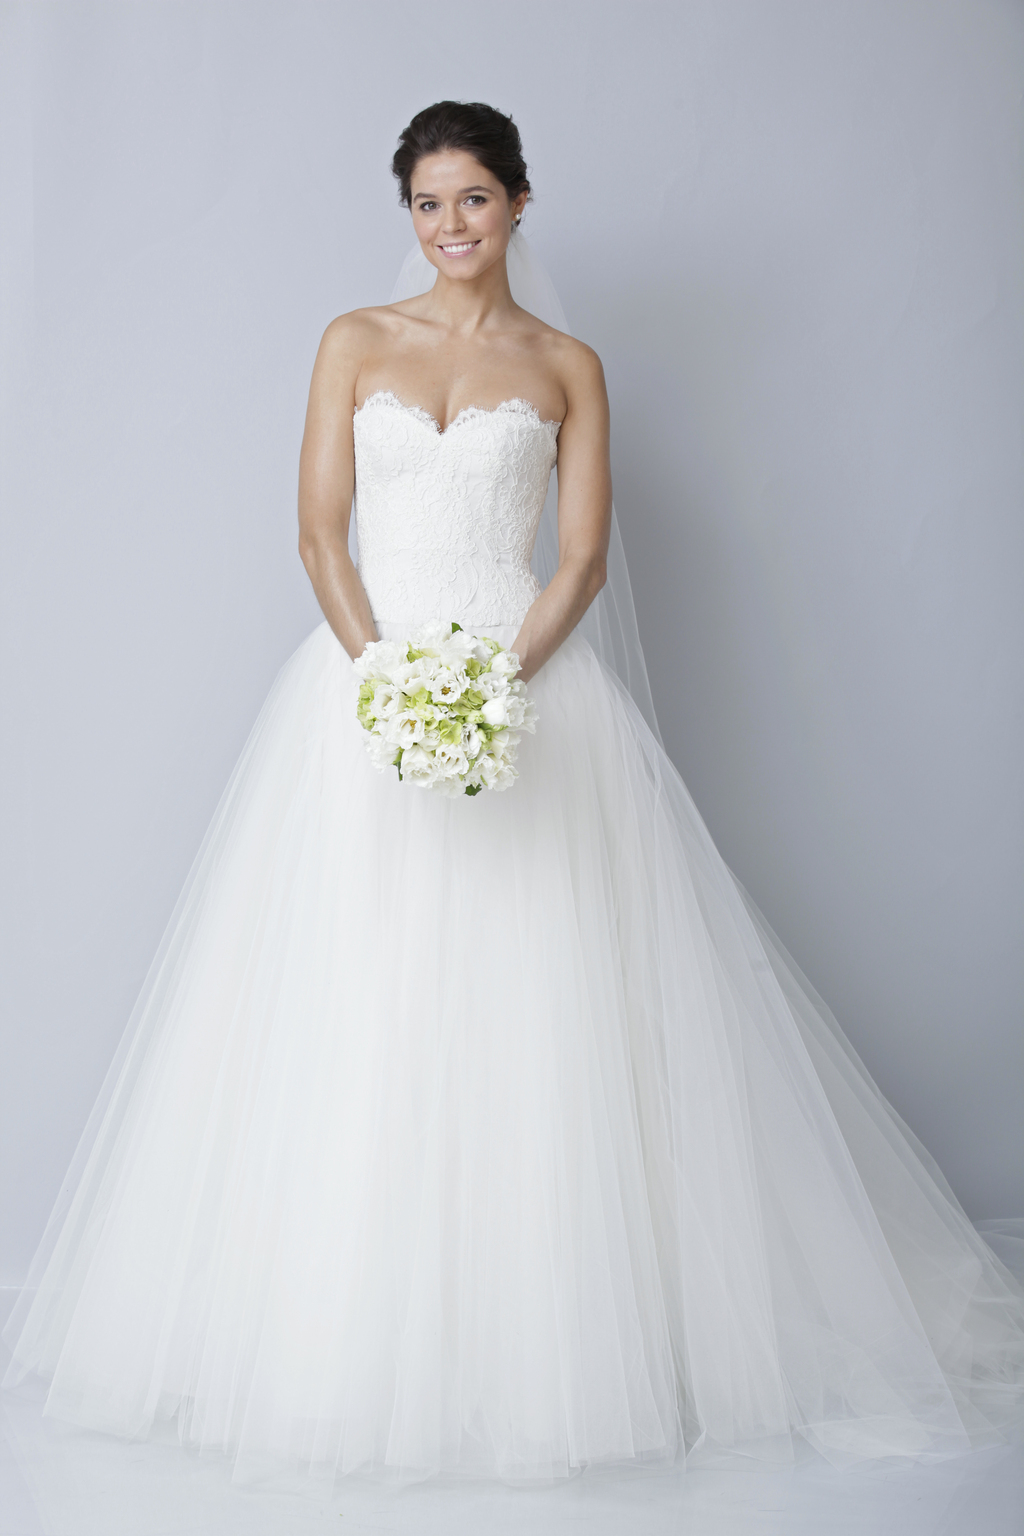 Theia-white-collection-wedding-dress-spring-2013-bridal-gown-890013.full